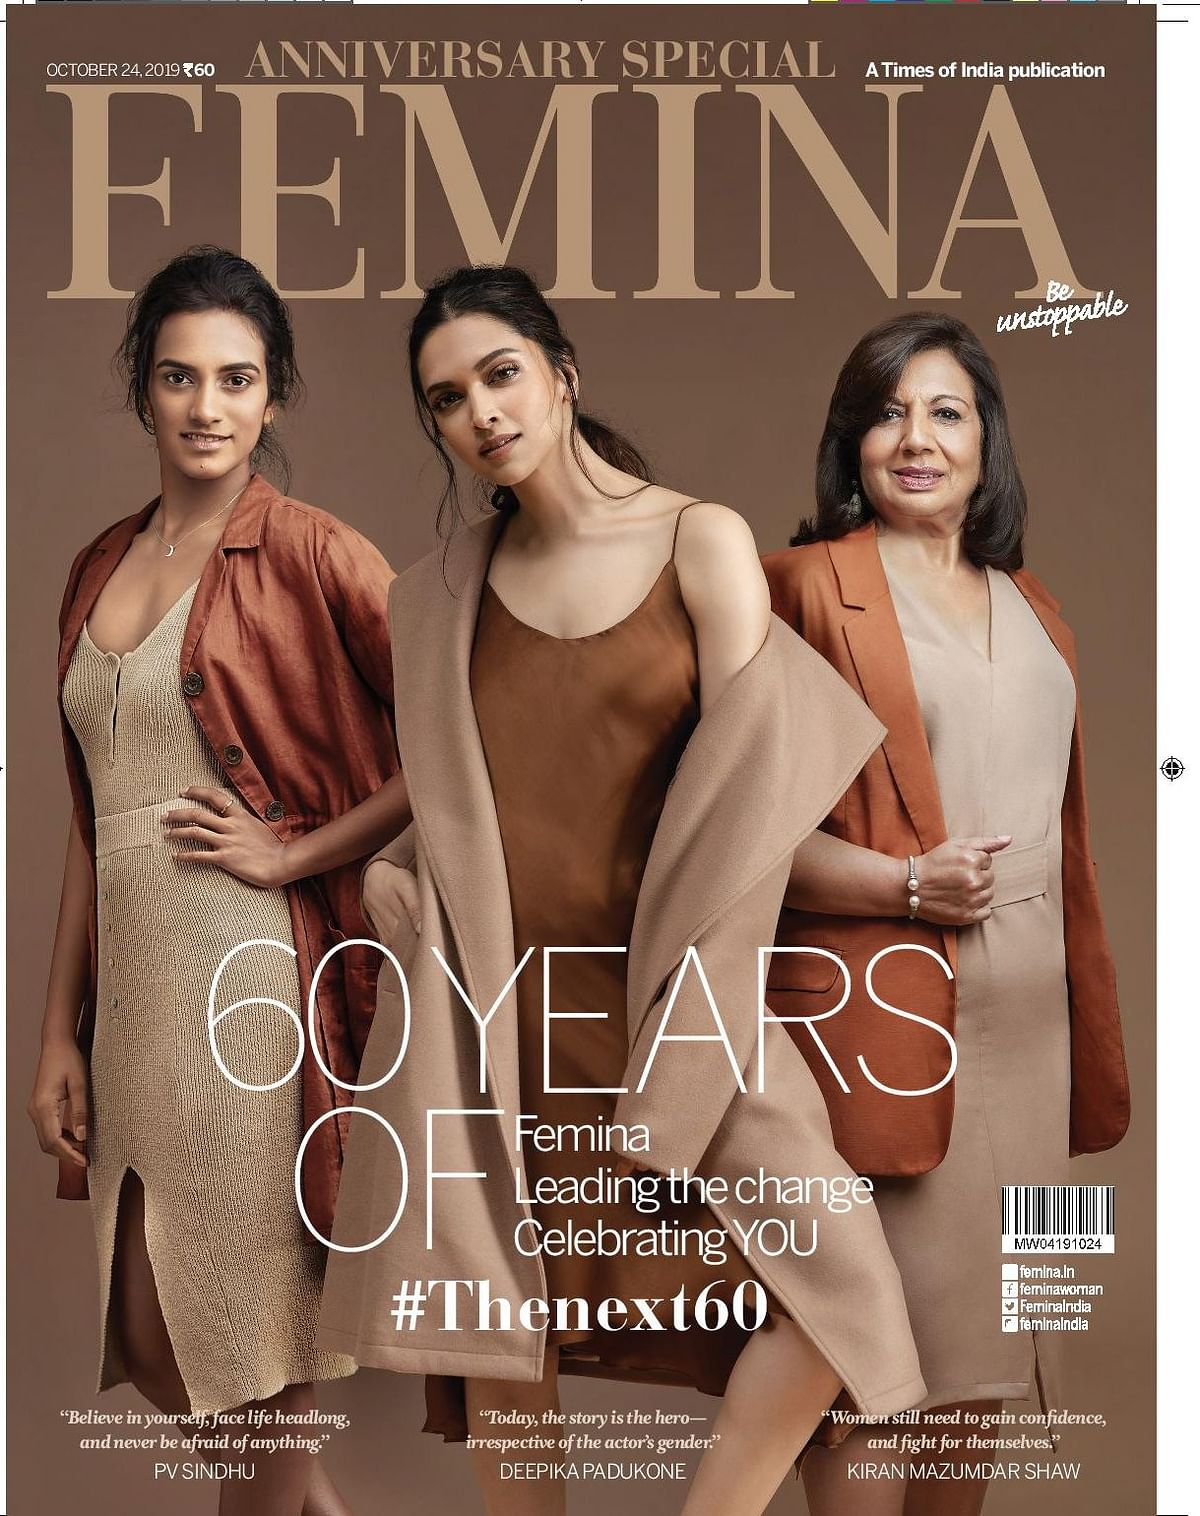 Femina celebrates 60 years of being a catalyst of change for Indian women